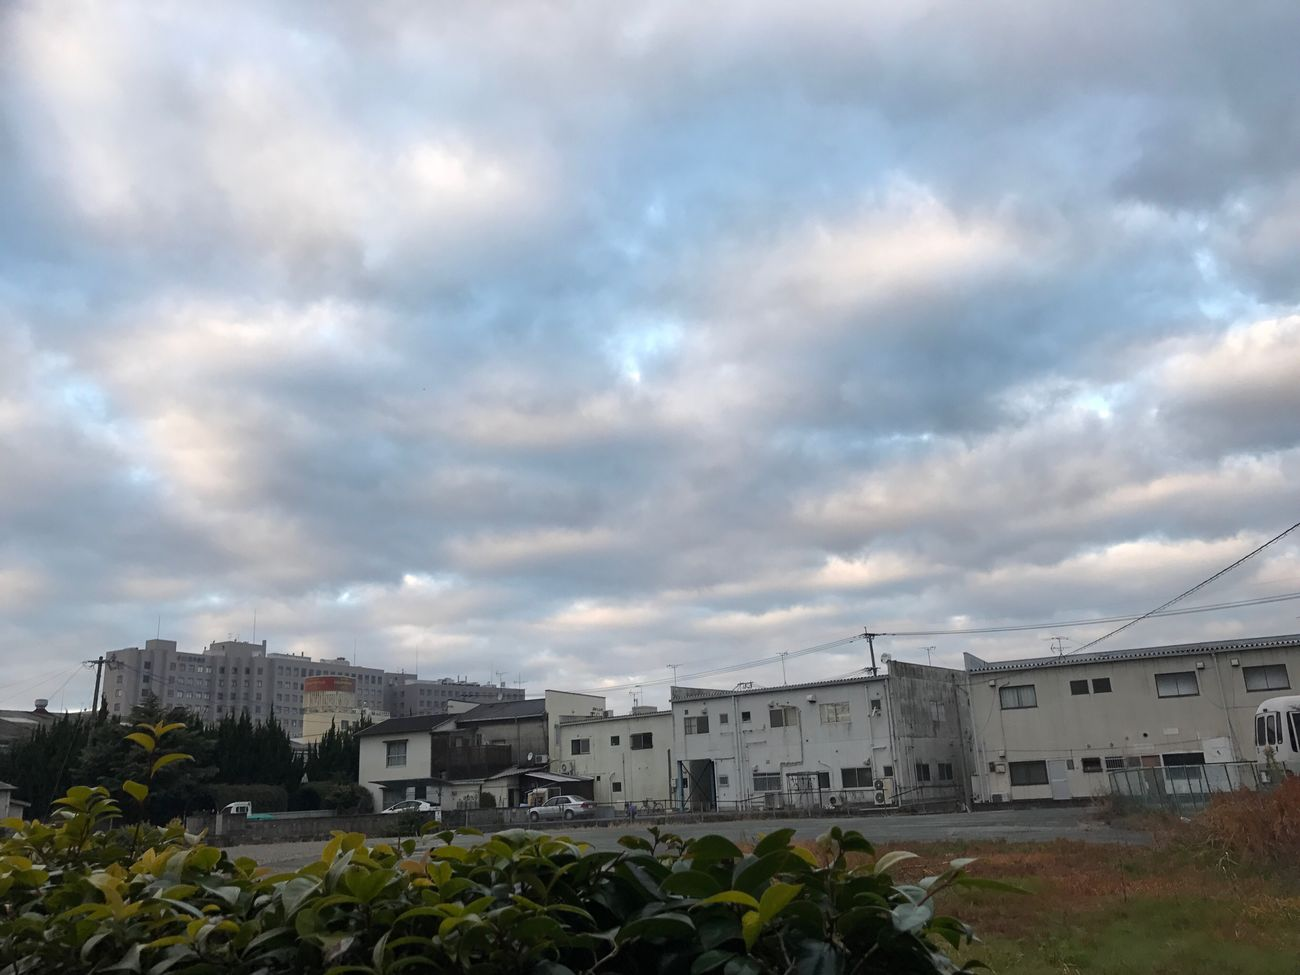 今朝の空 Building Exterior Architecture Built Structure Sky City Cloud - Sky House Residential Building No People Outdoors Cityscape Day Nature Iphone7 Love Japan Behappy 福岡県 12月 空 お疲れ様 ダイエット 仕事 土曜日